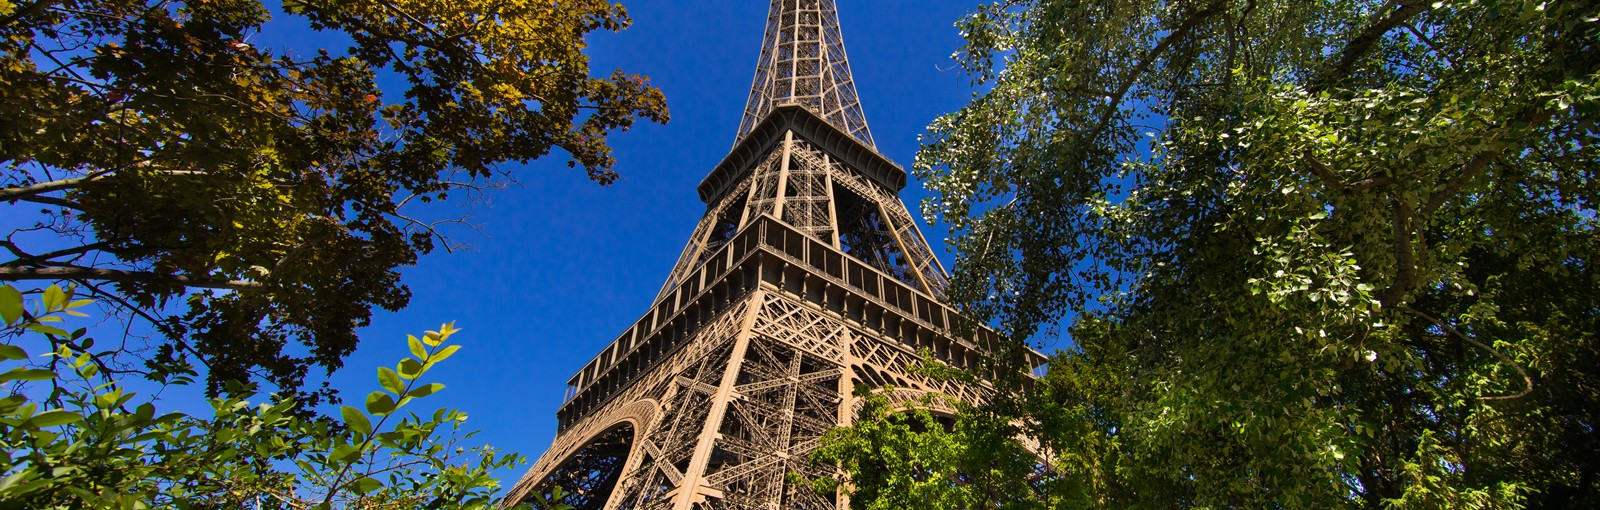 Tours Short stay with 4 hotel nights - Paris Packages - Paris Tours